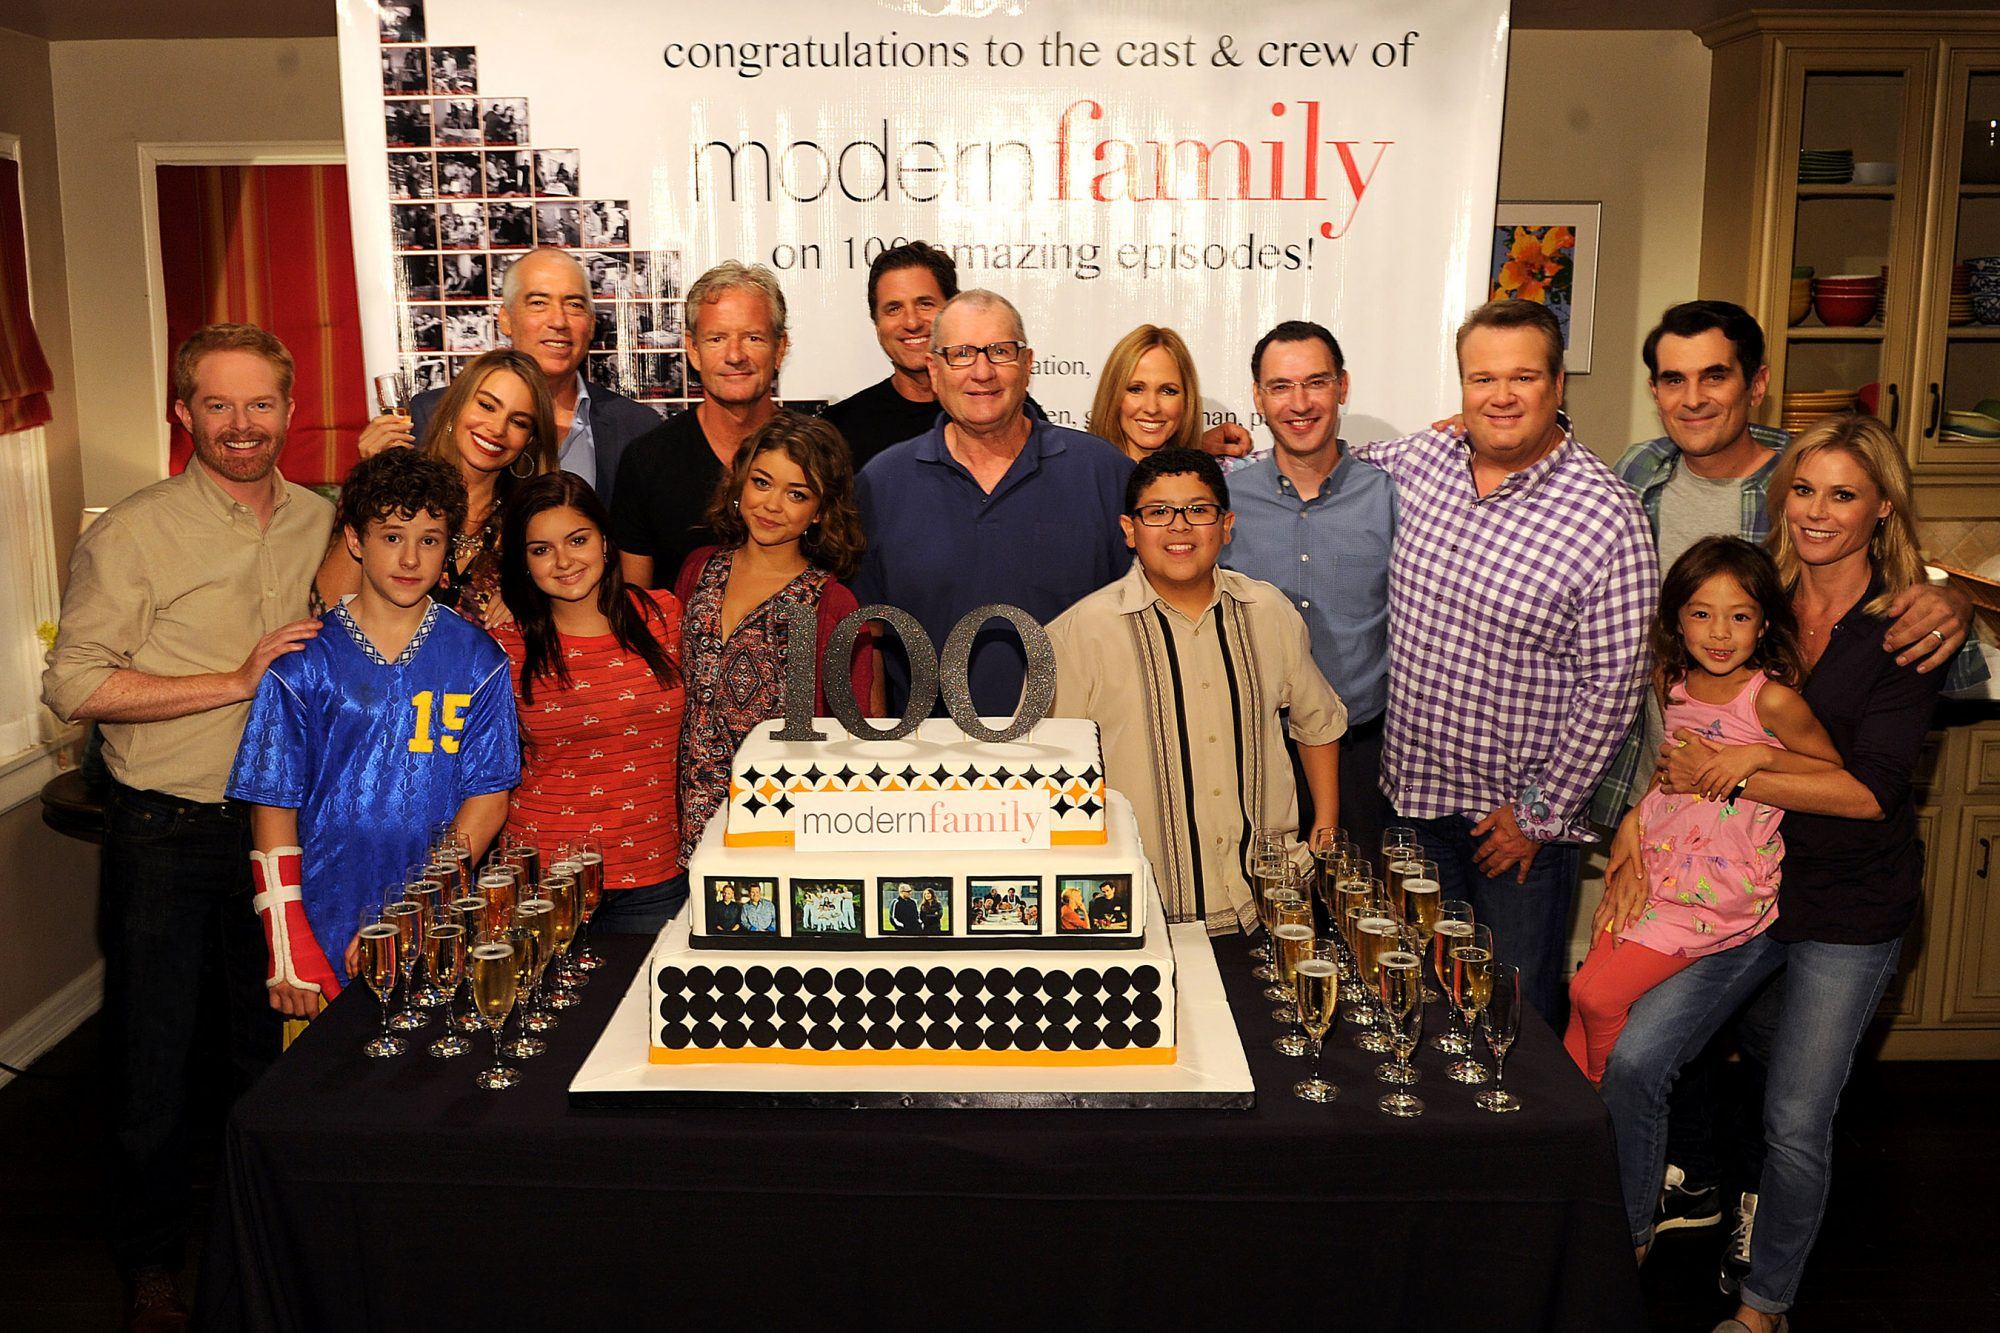 Modern Family 100th Episode Cake Cutting